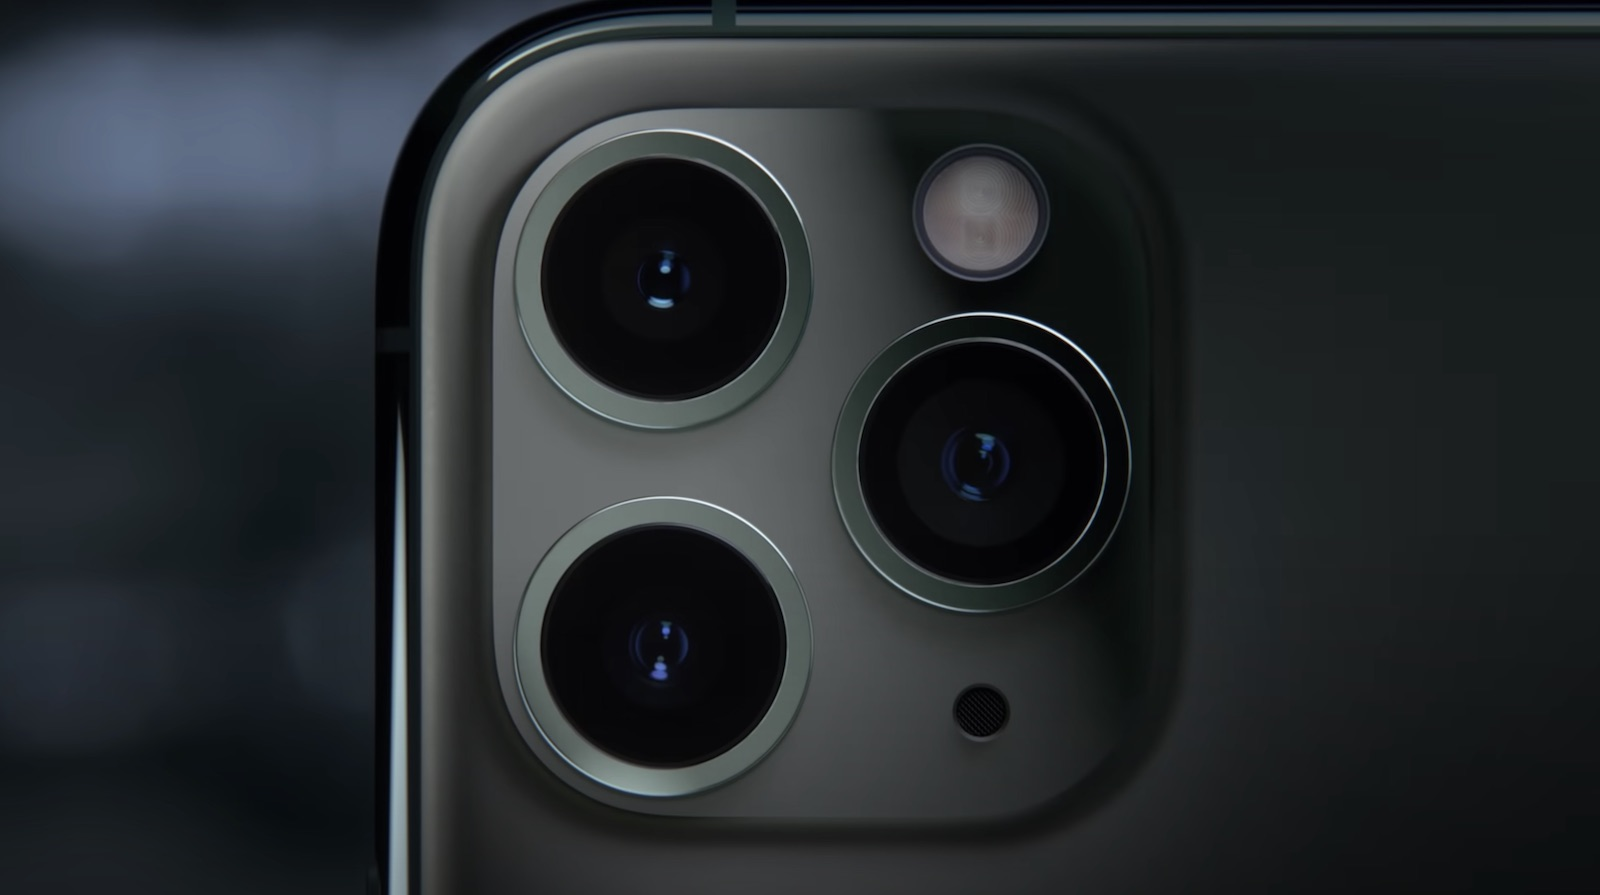 photo of iPhone Camera Lens Supplier Refutes Kuo Report on Quality Issues, Says Production Still Running Without Issues image